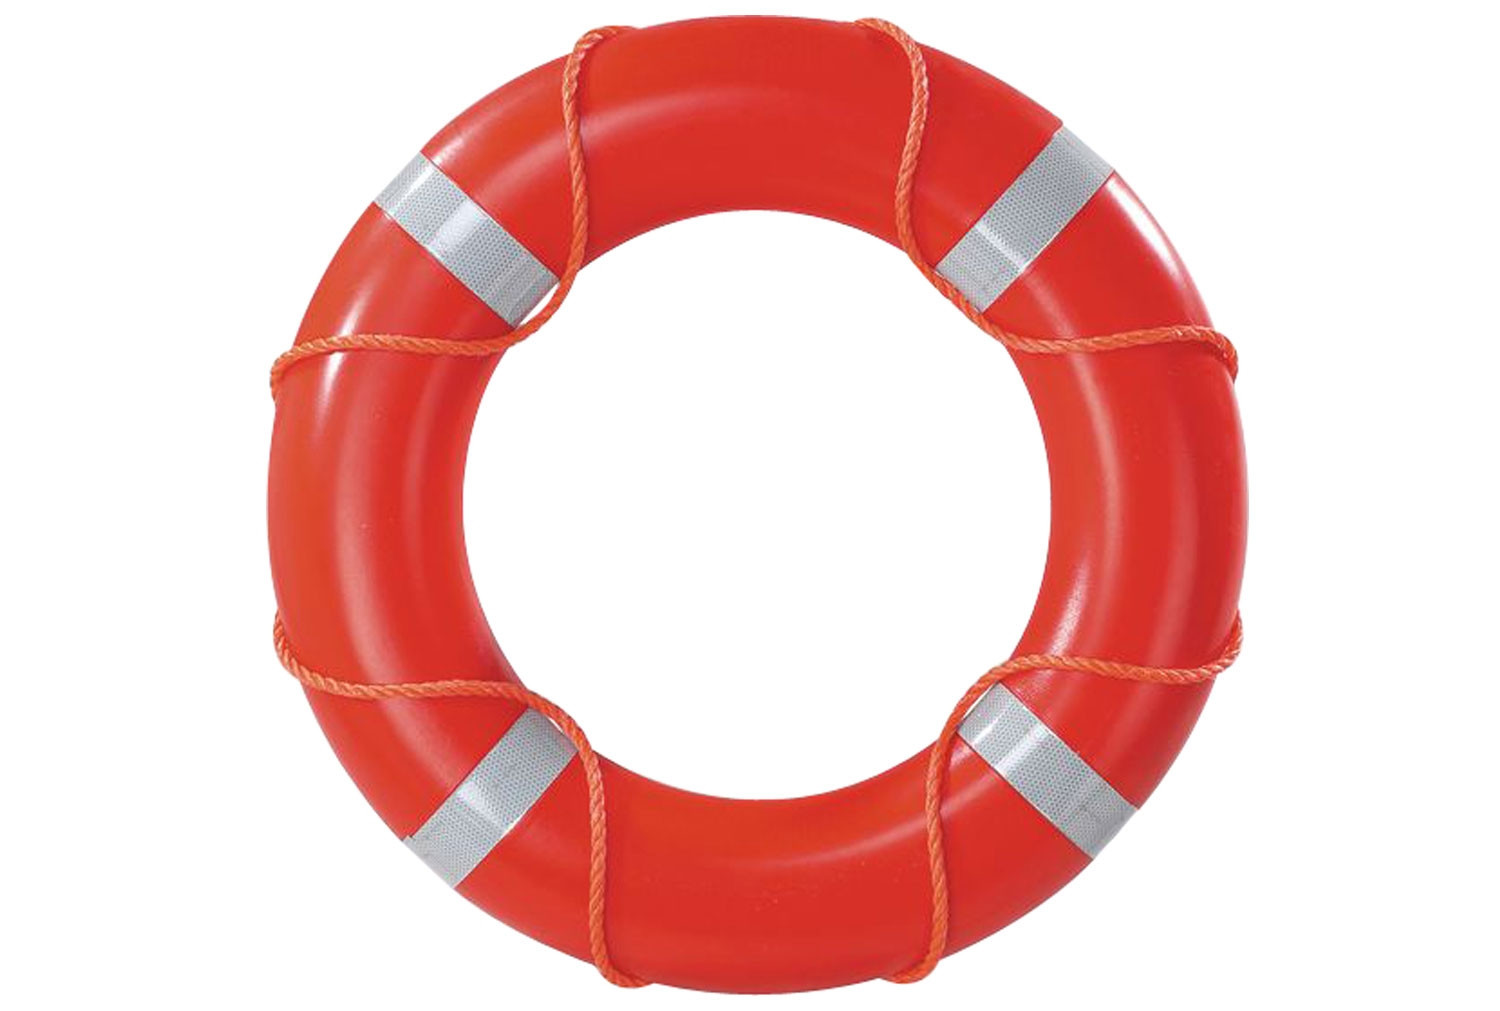 Lifebuoy With Reflective Tape (750mm)